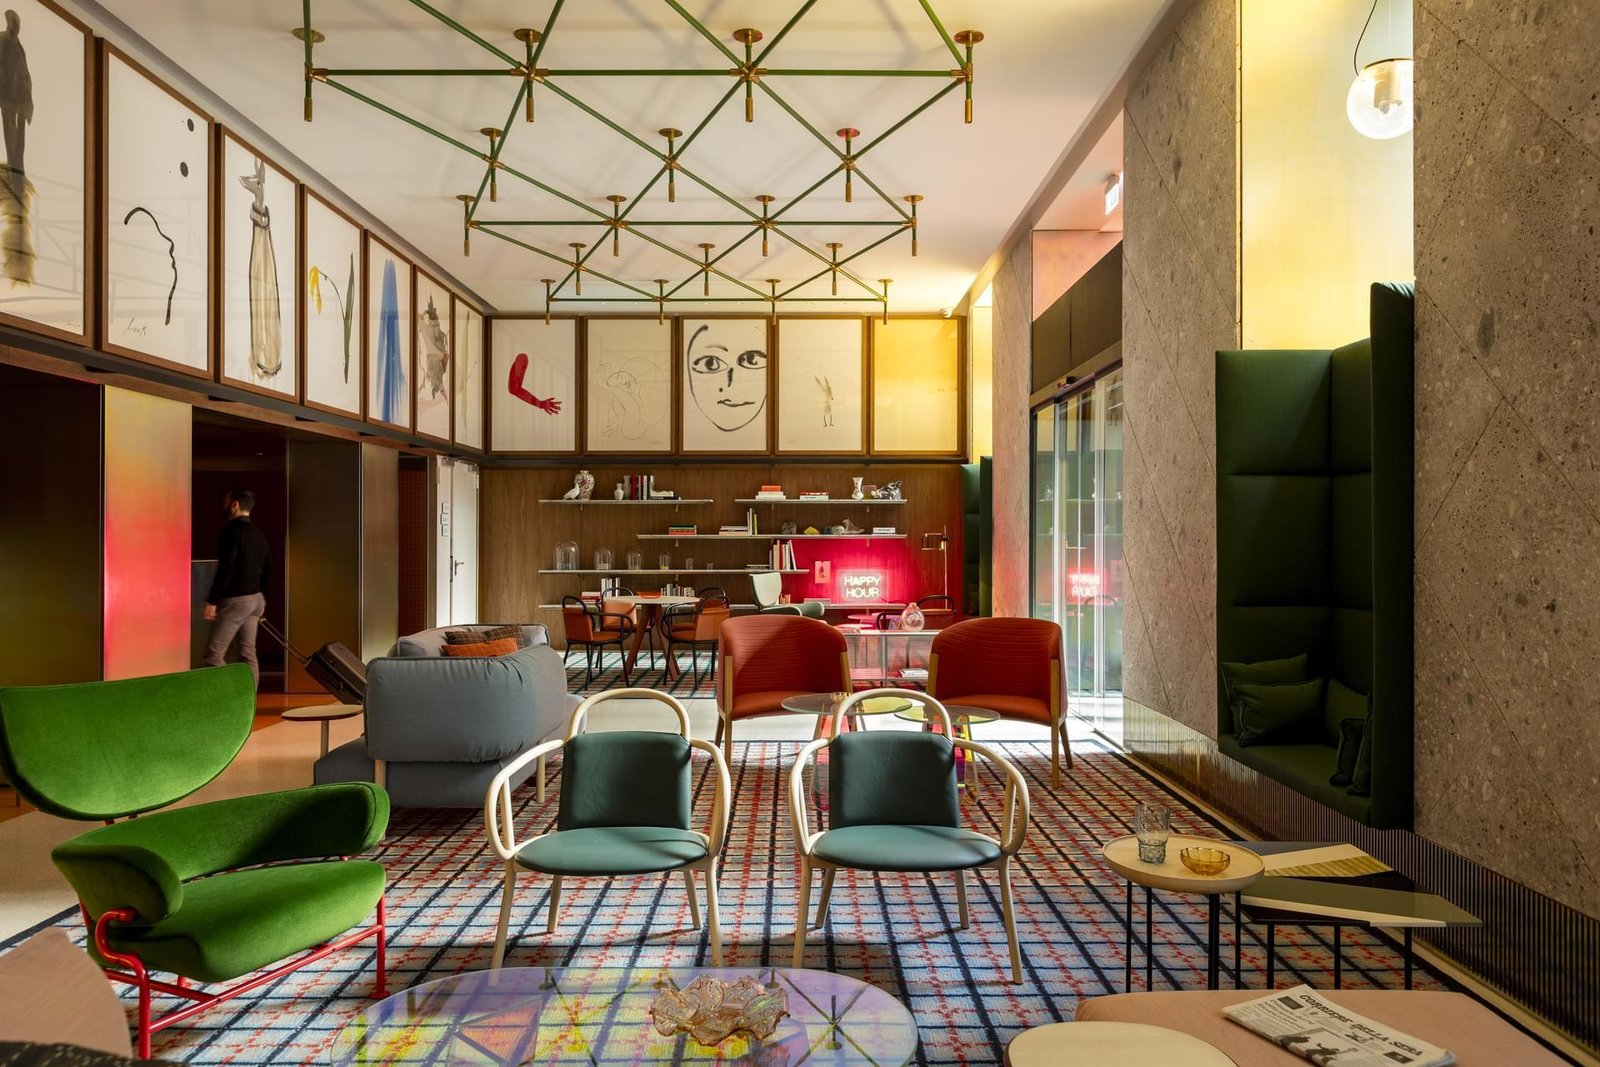 Room Mate Giulia Hotel by Patricia Urquiola in Milan. Courtesy of Room Mate Giulia Hotel.